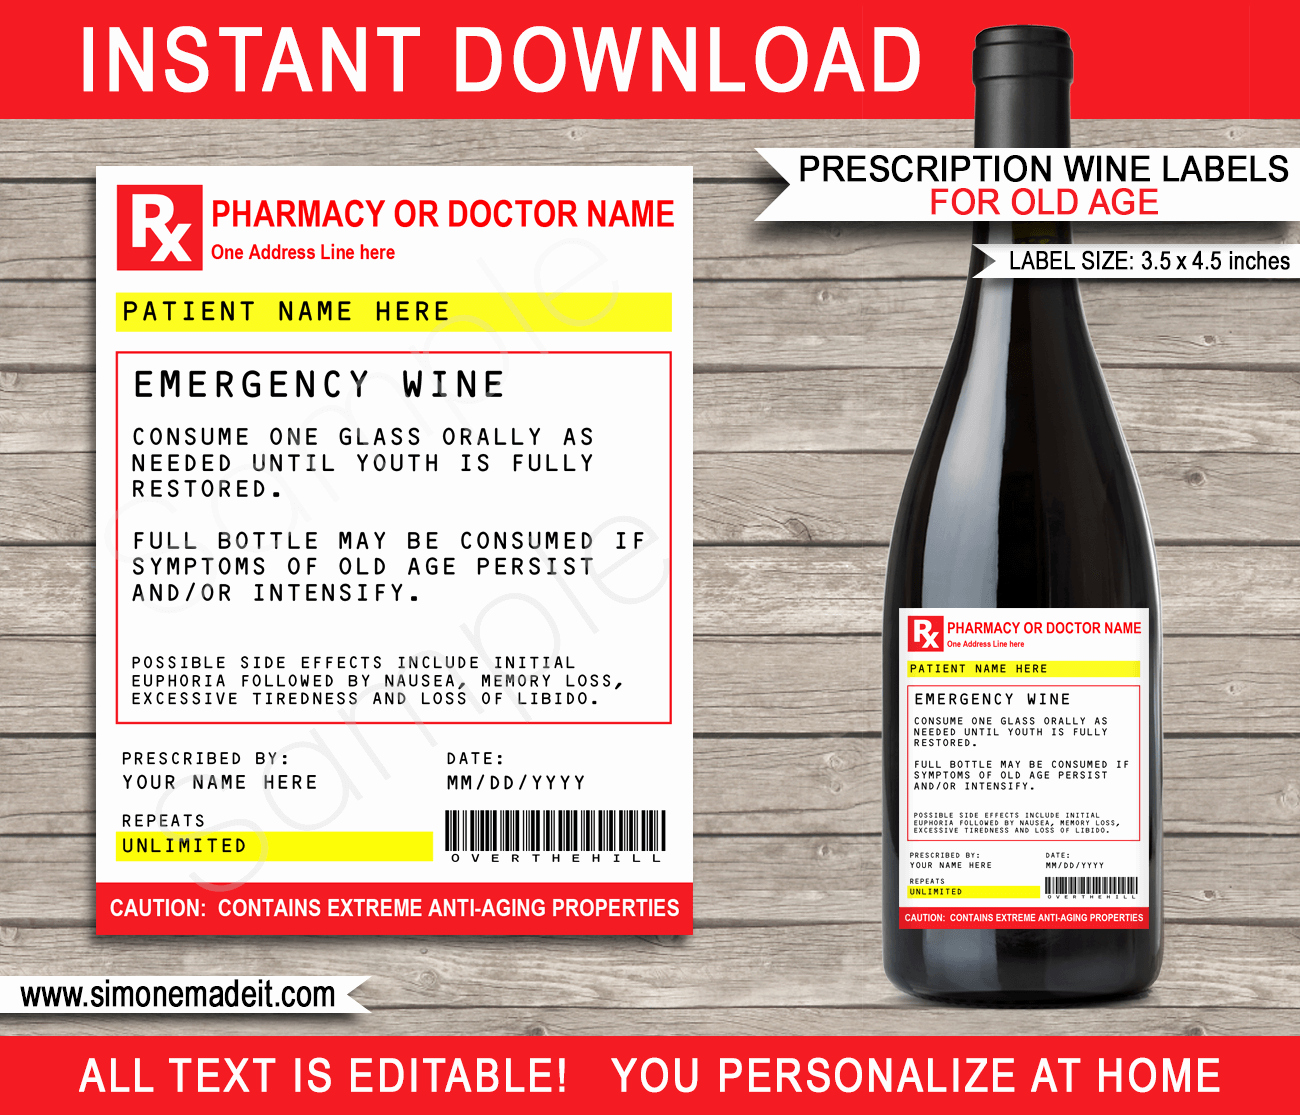 Prescription Label Template Download Lovely Old Age Prescription Wine Bottle Labels Gag Gift